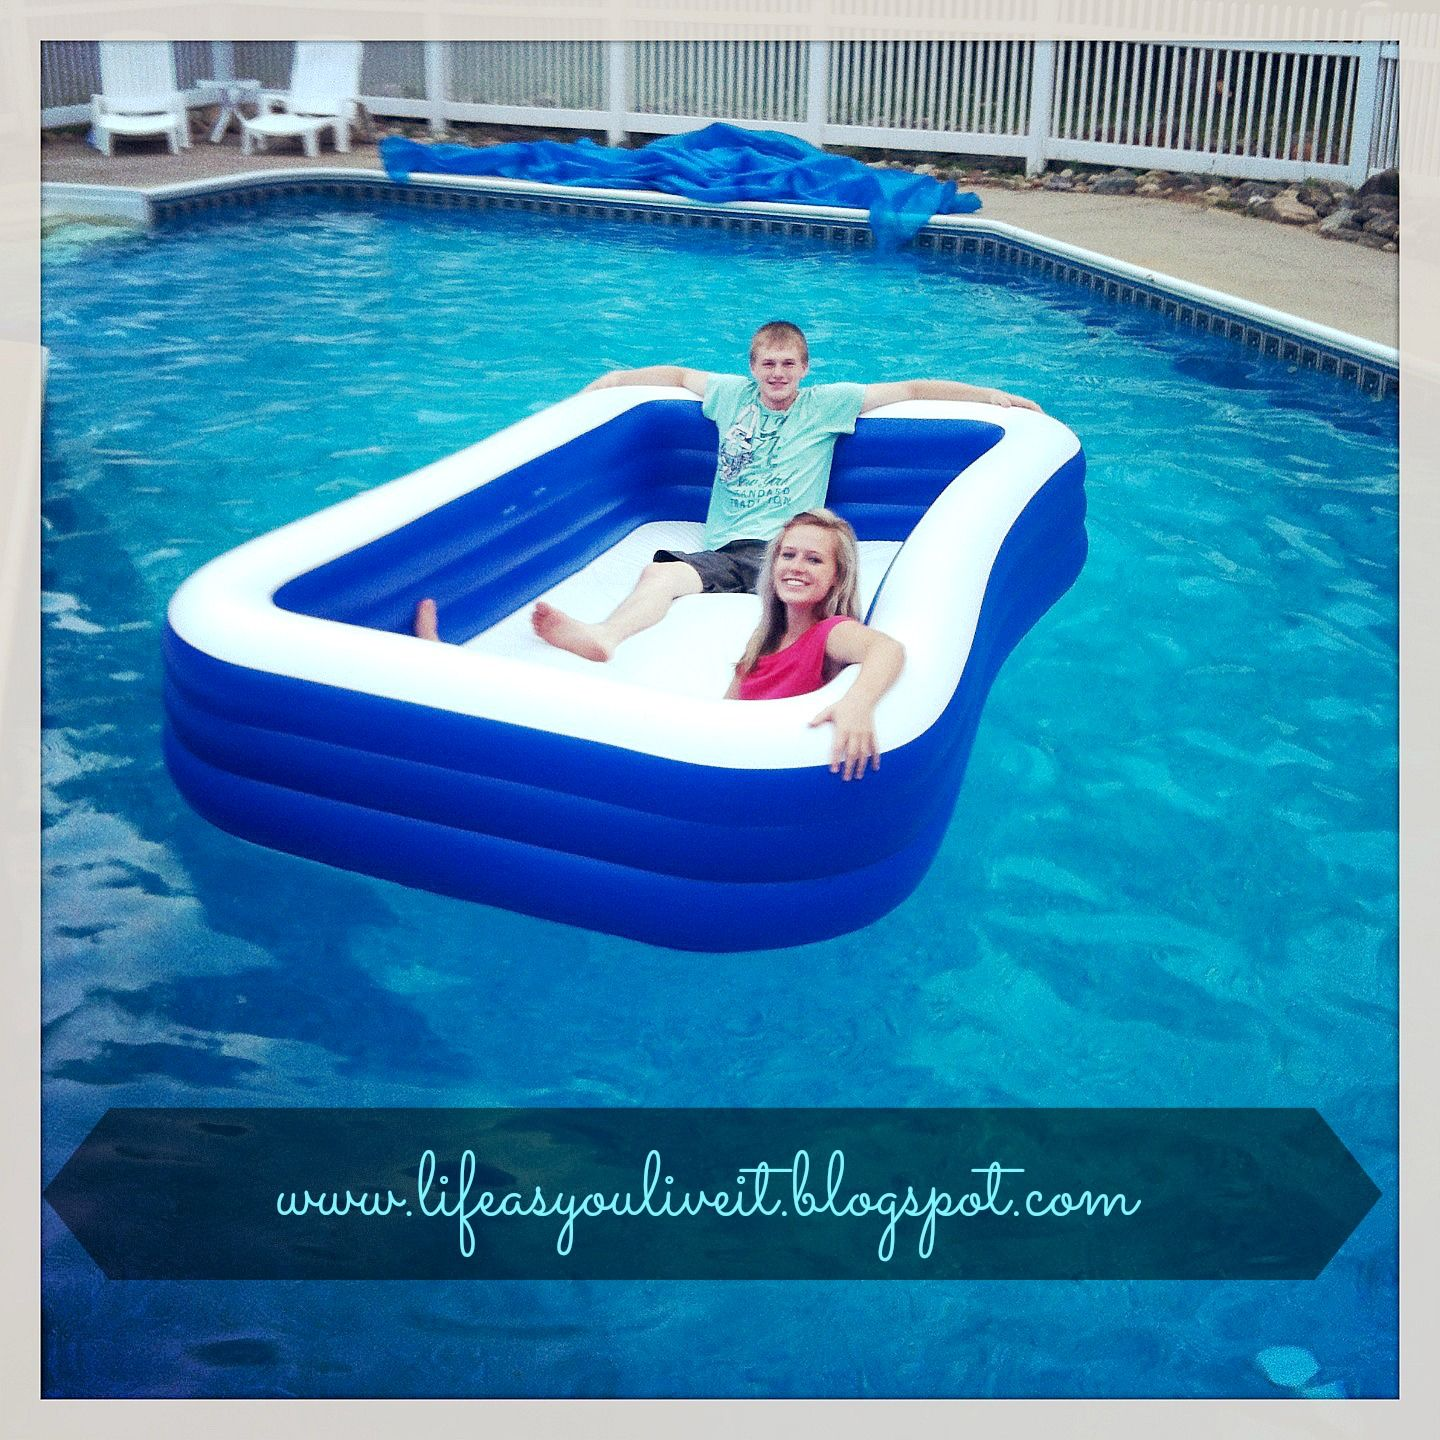 A Blow Up Pool Inside Of A Pool Inside Pool Blow Up Pool Pool